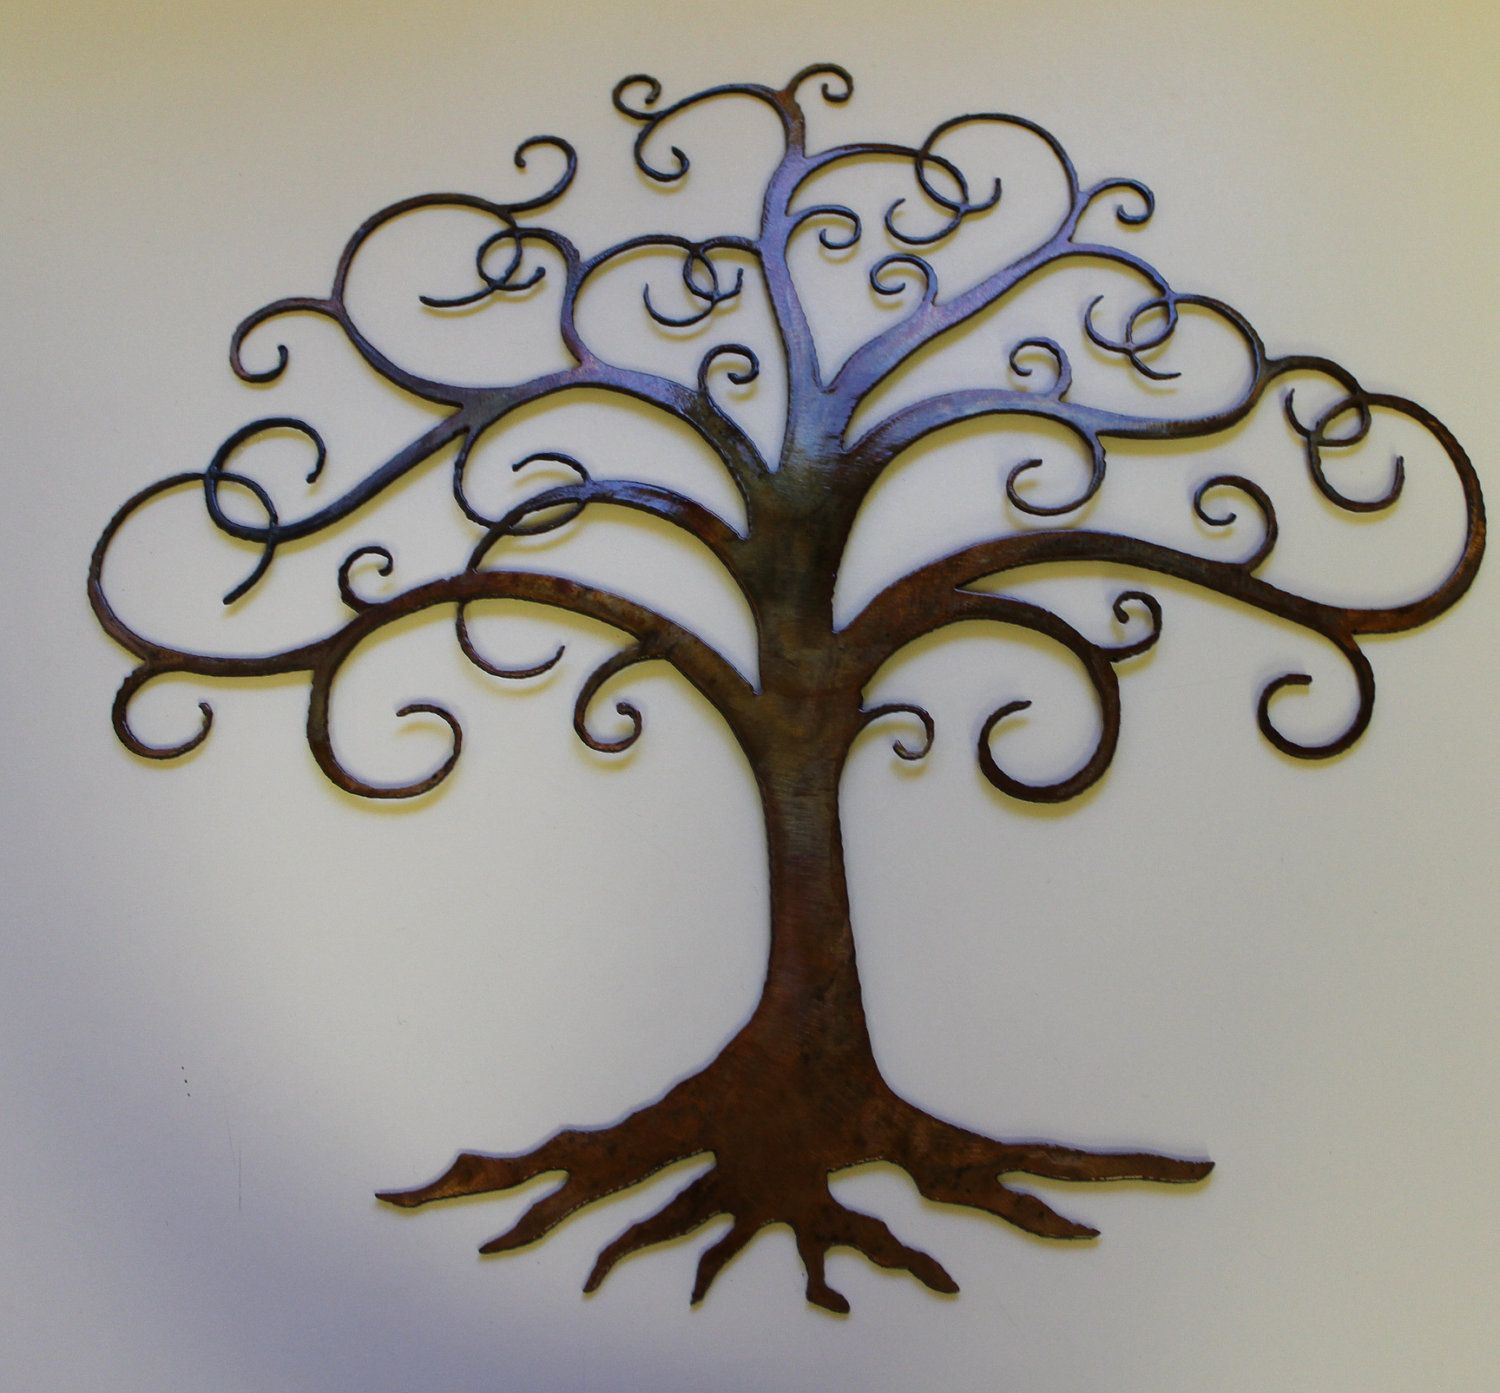 Tree of life swirled tree of life metal wall art decor Best wall decor